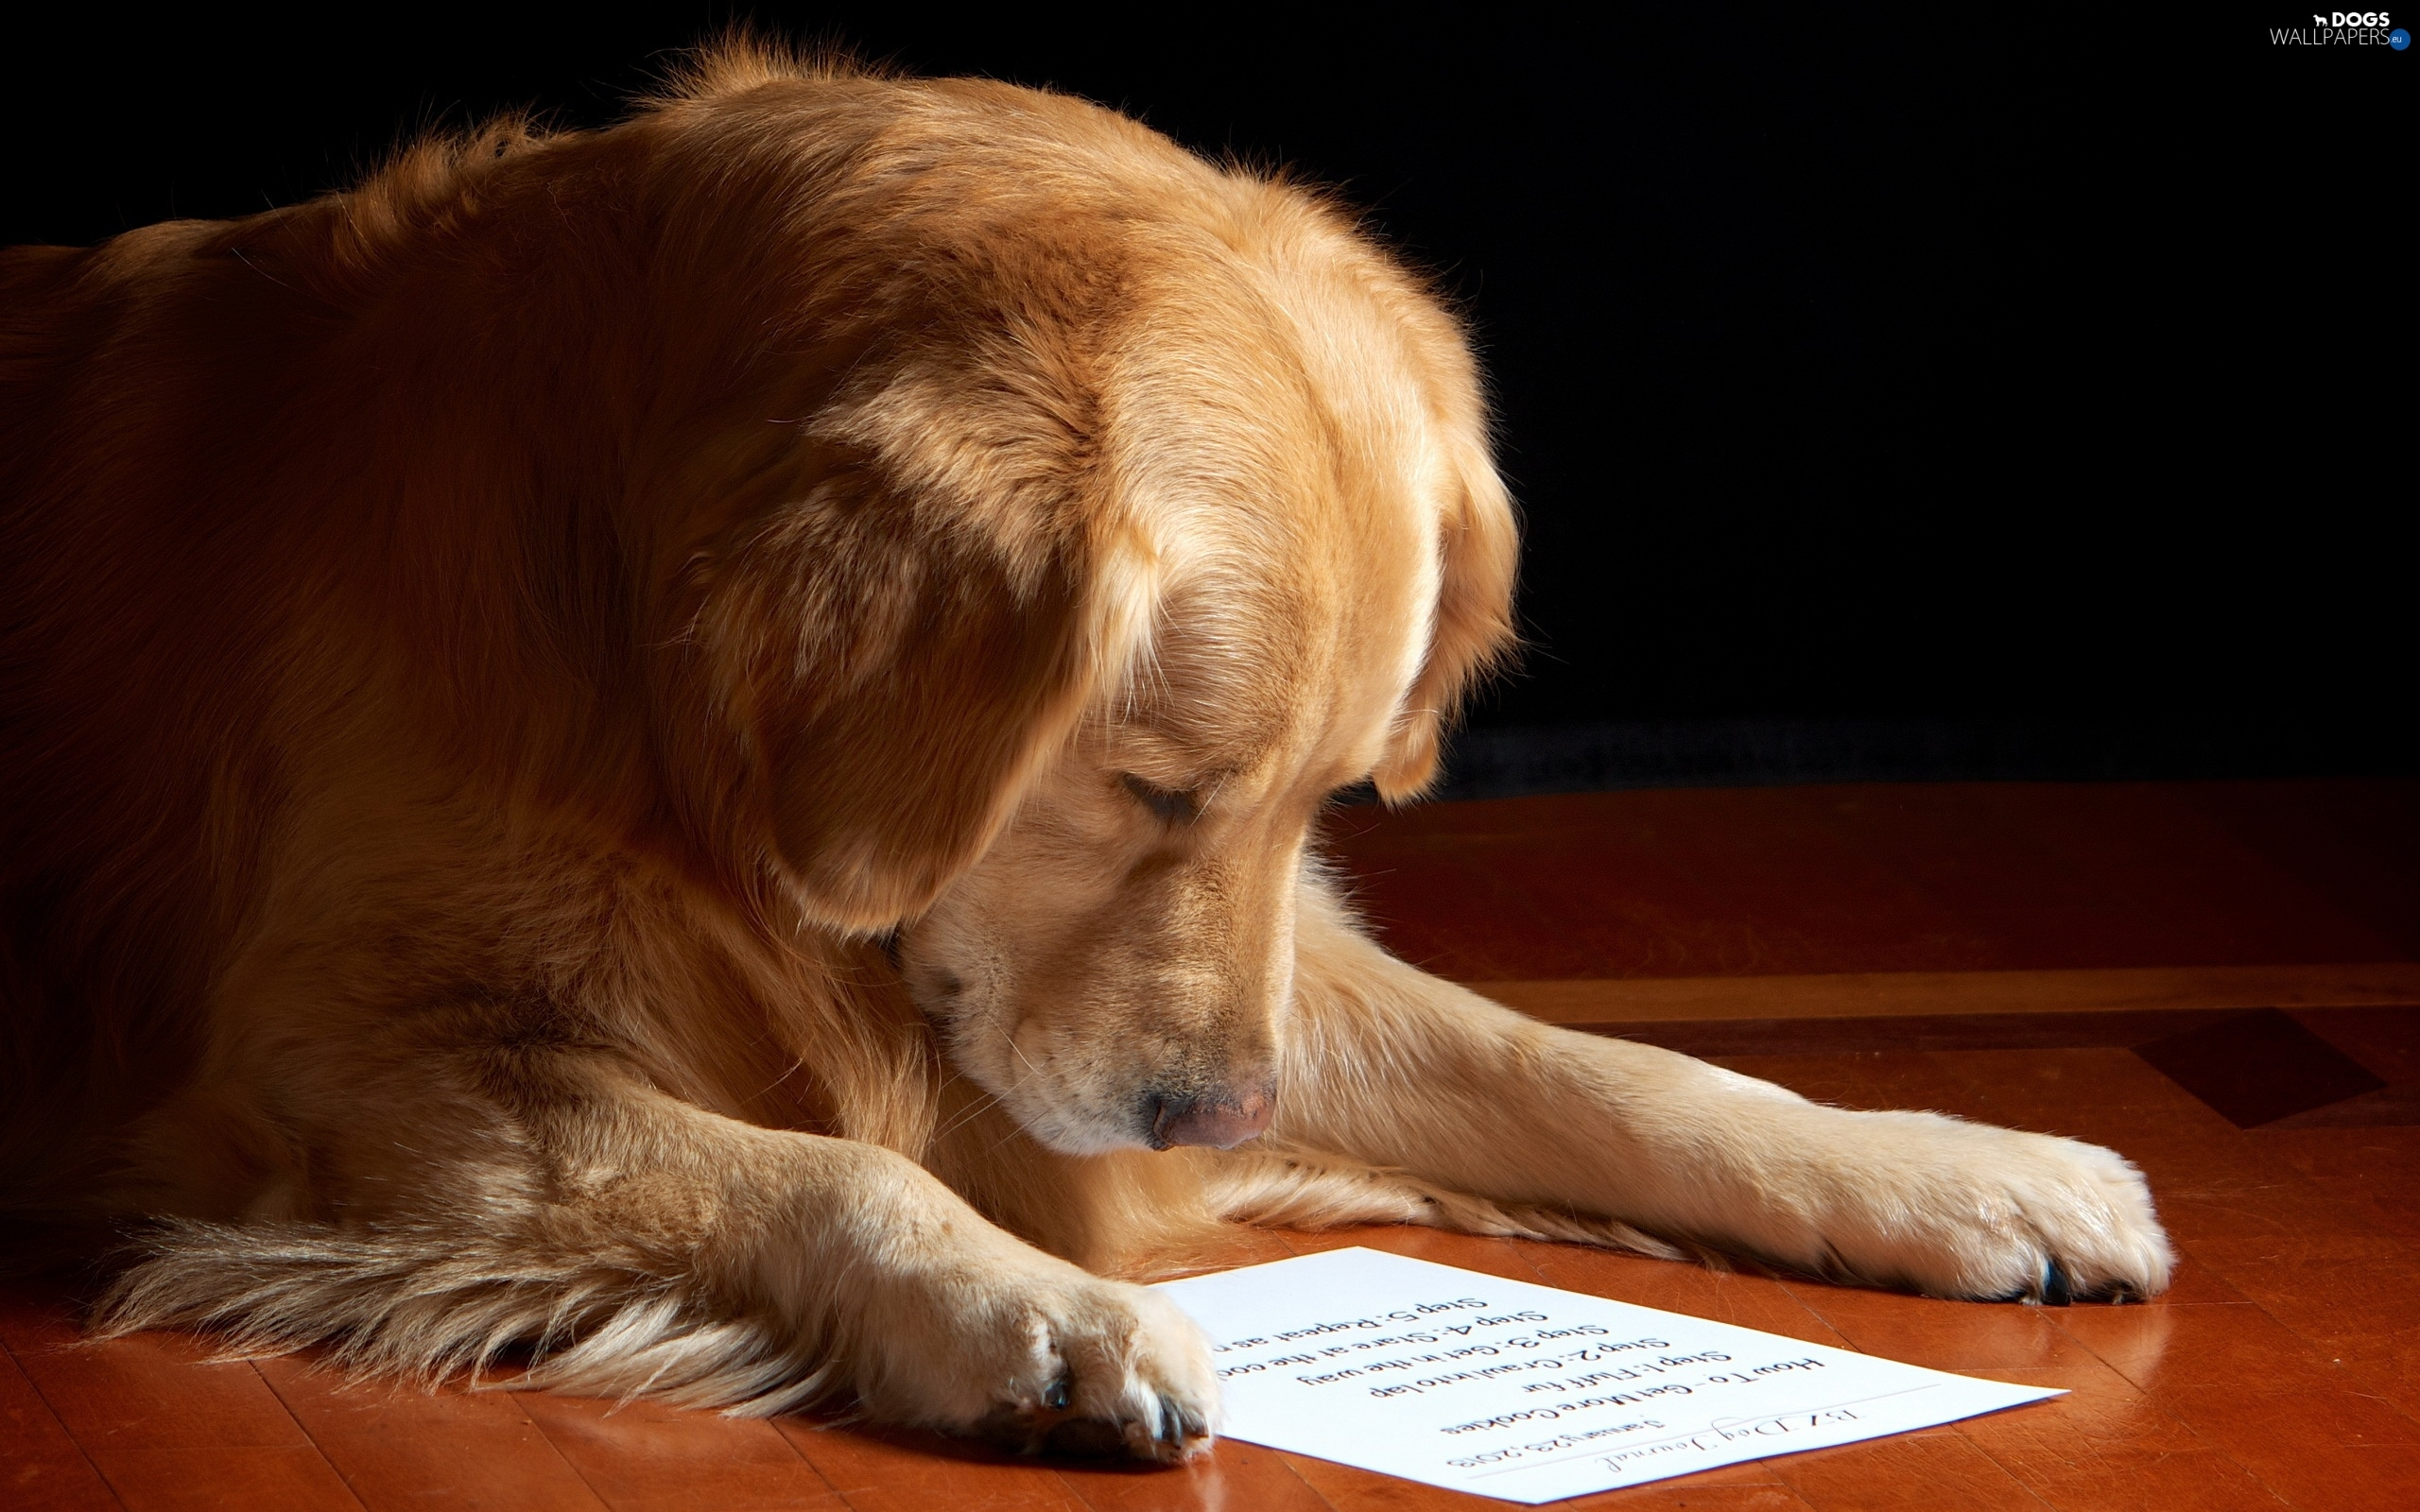 Reading Books To Shelter Dogs Makes The World A Little Bit ... |Puppy Reading